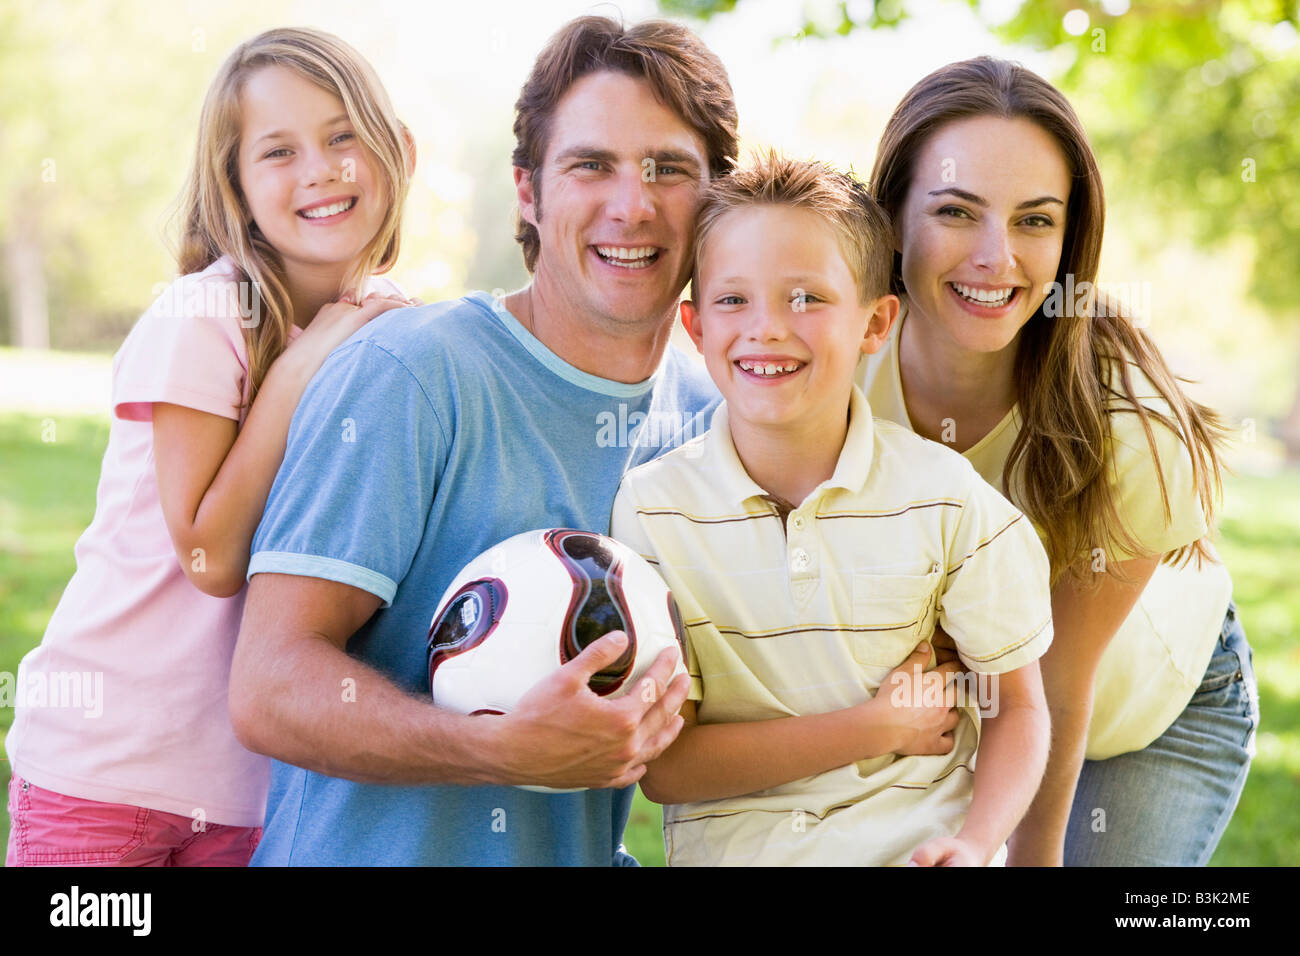 Family standing outdoors holding volleyball smiling - Stock Image